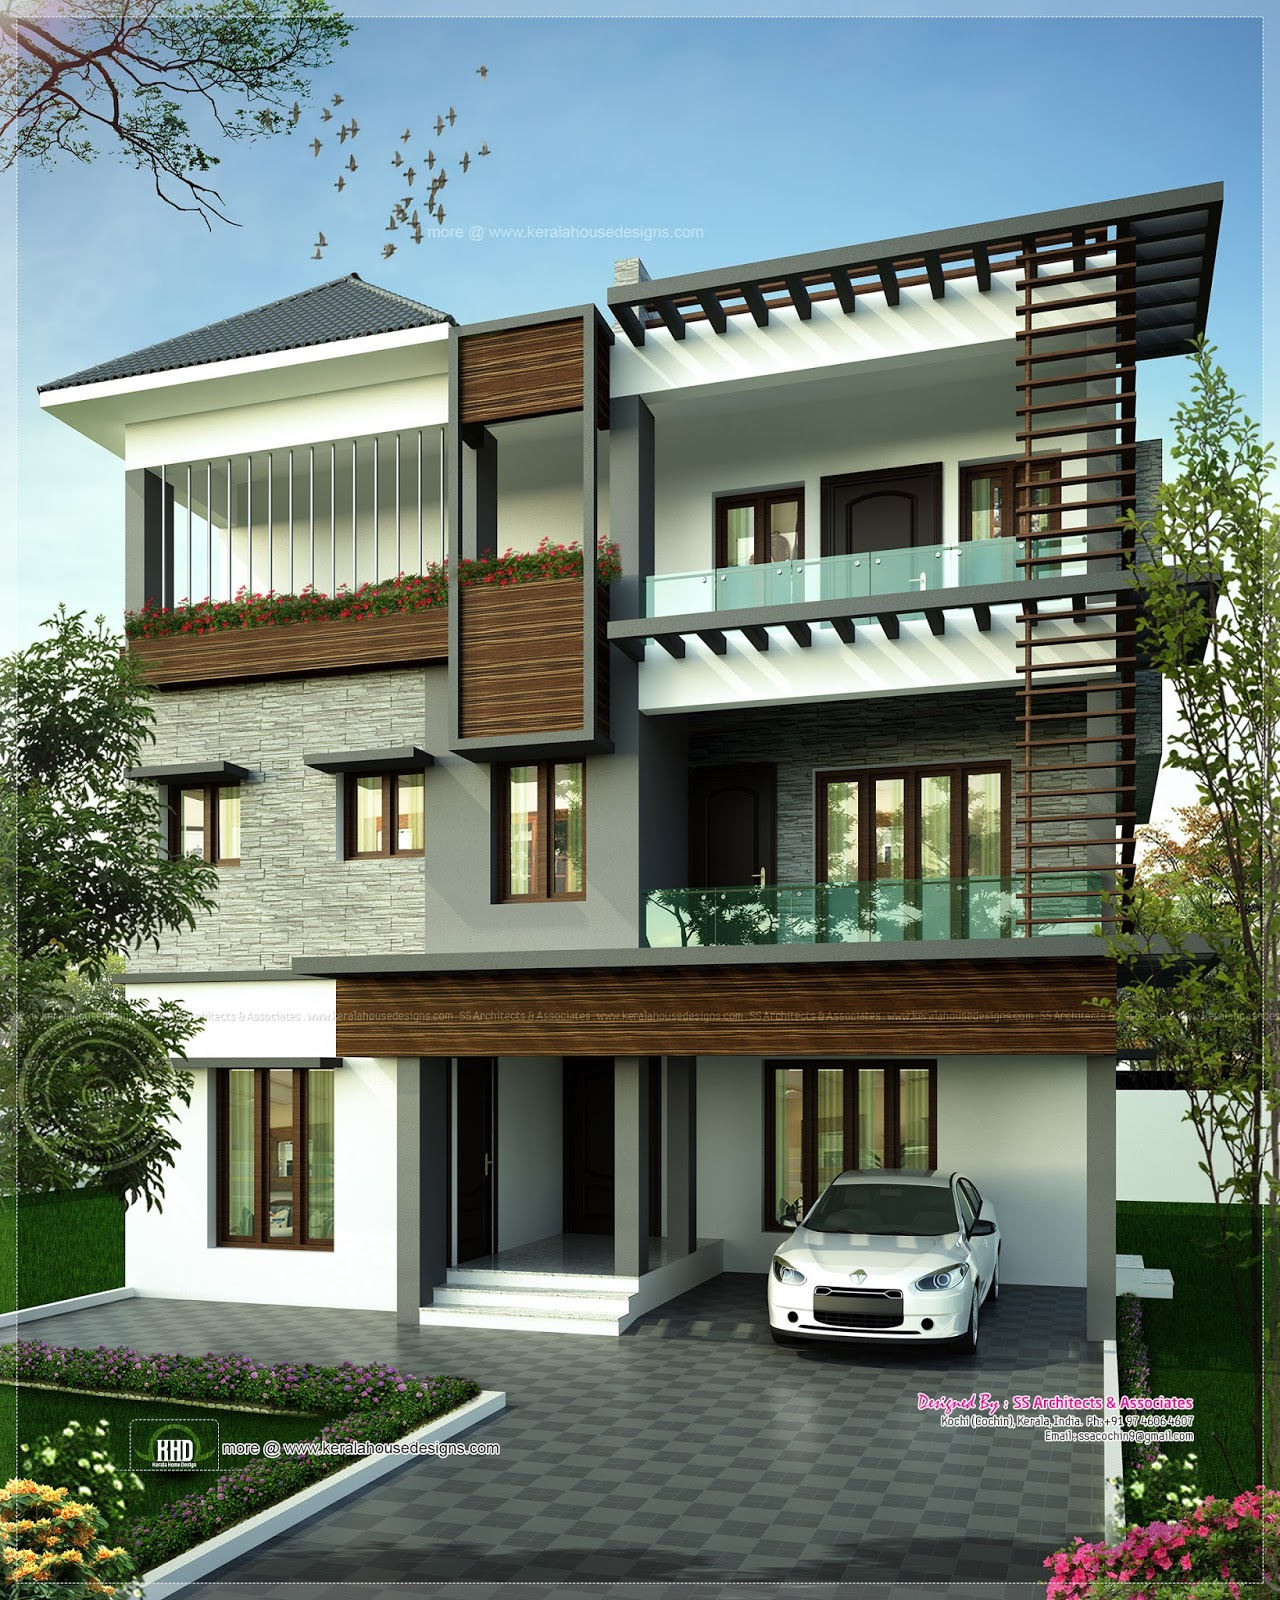 Home Studio Design Associates August 2013 Kerala Home Design And Floor Plans